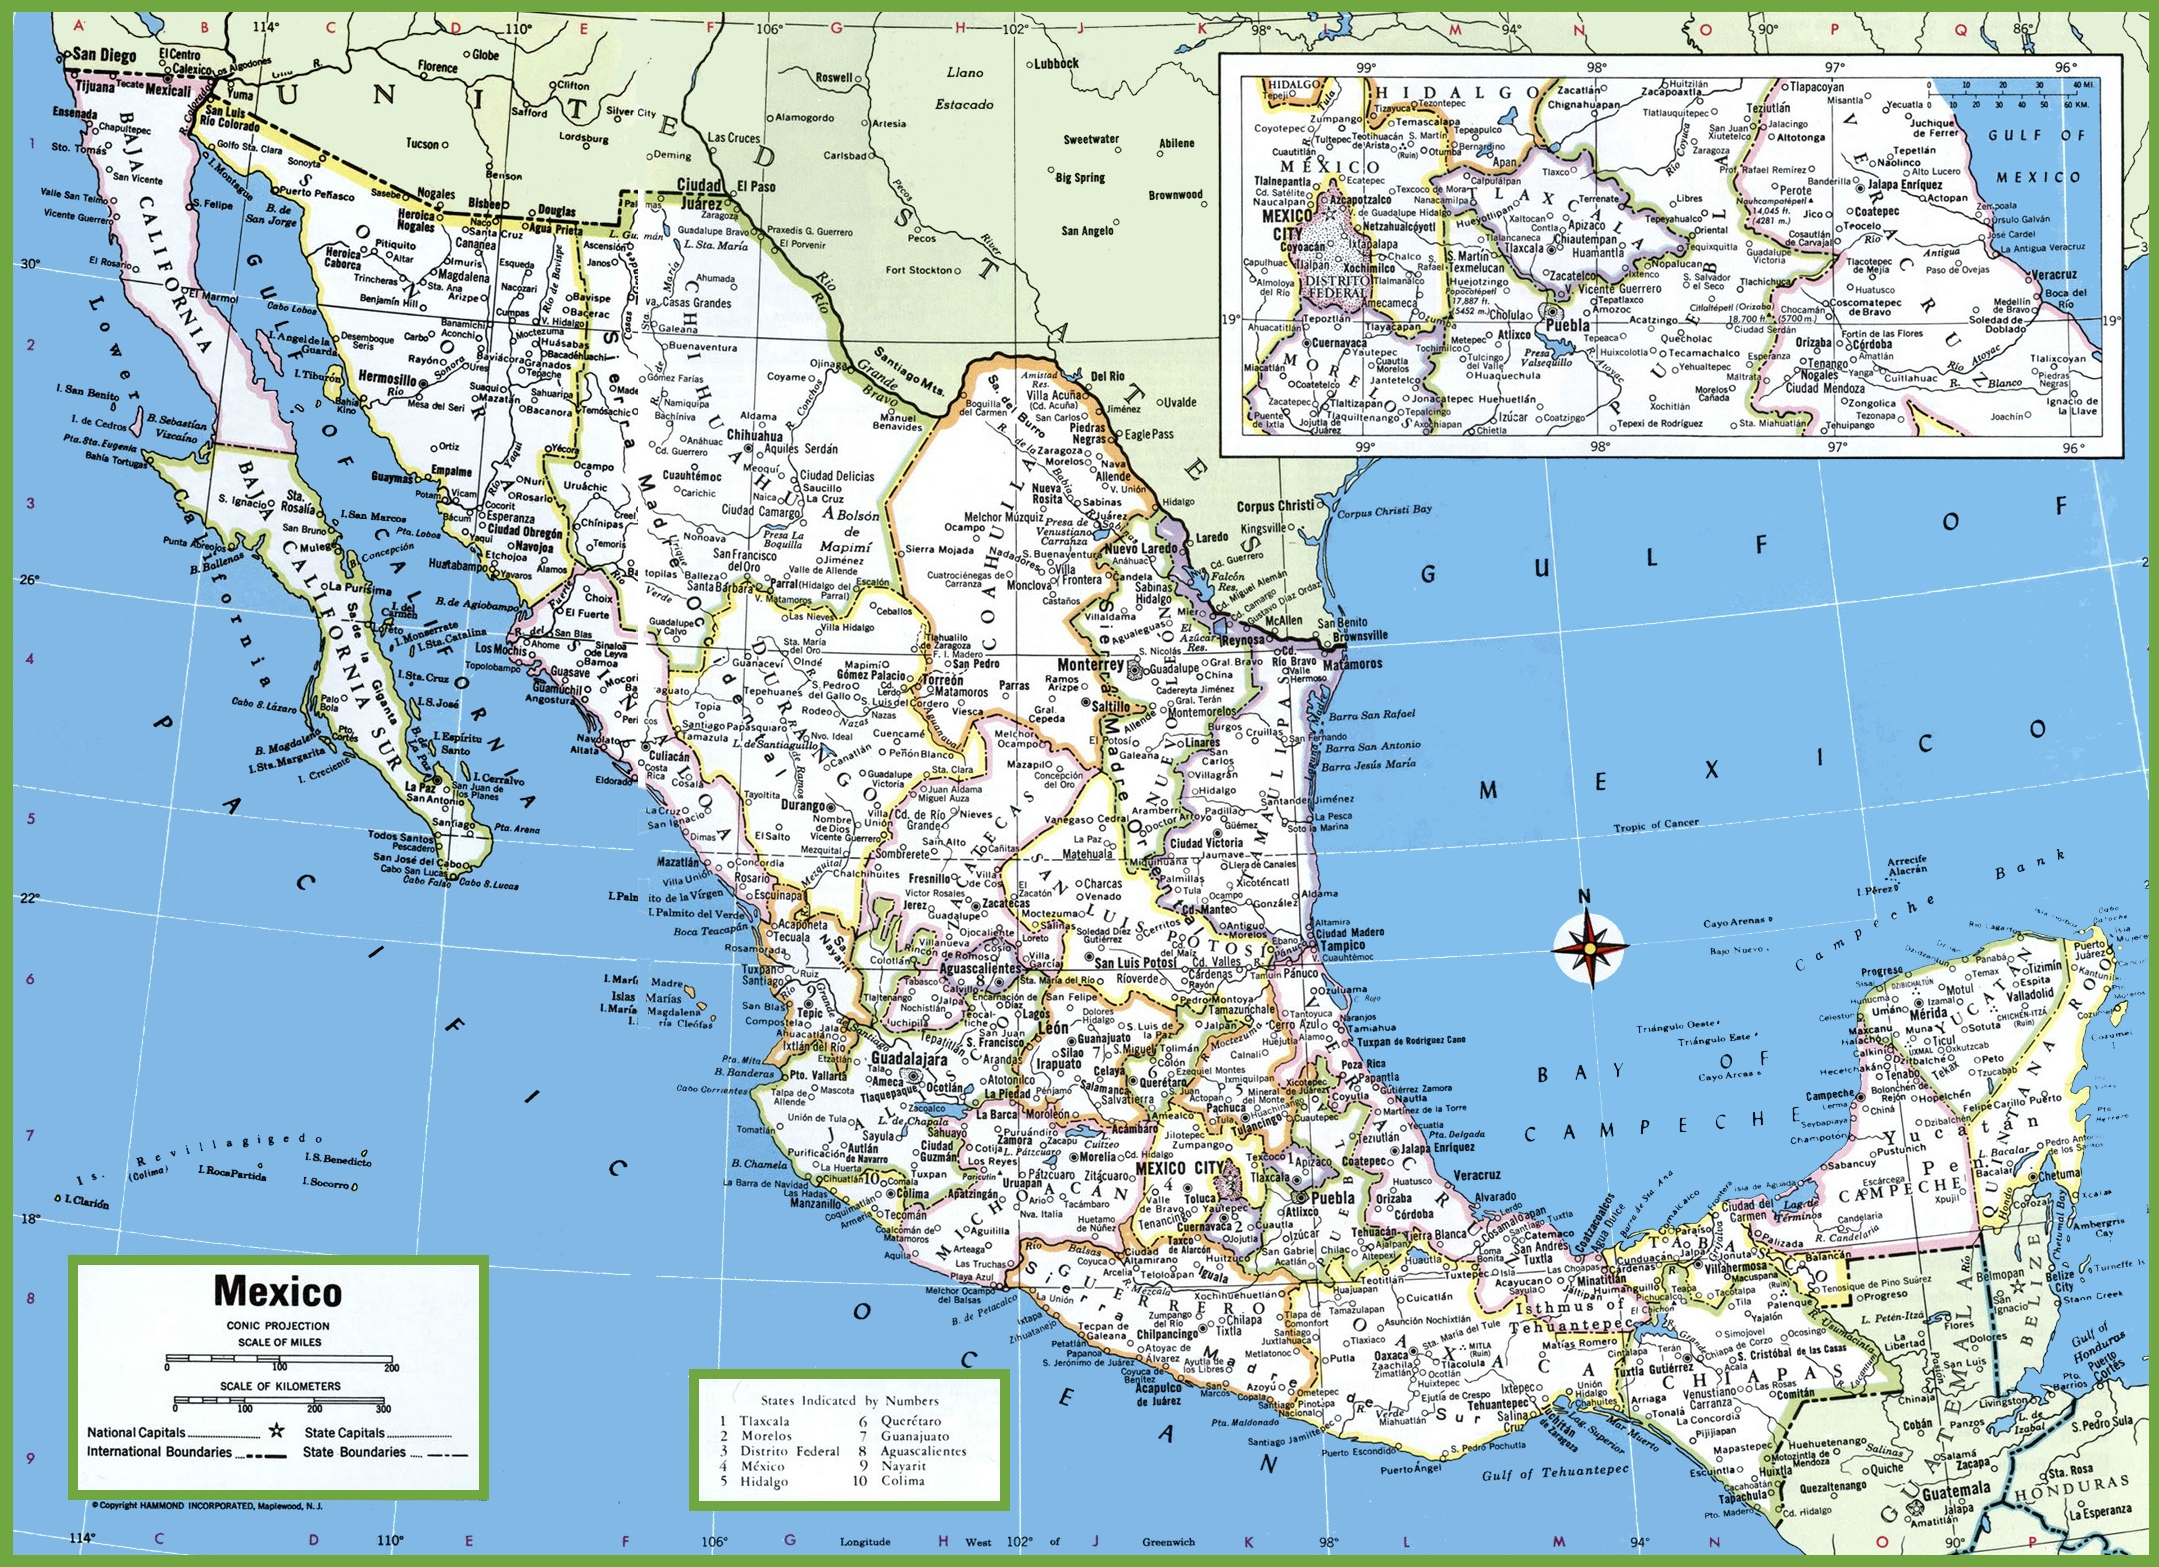 Mexico Map With Cities Large detailed map of Mexico with cities and towns Mexico Map With Cities